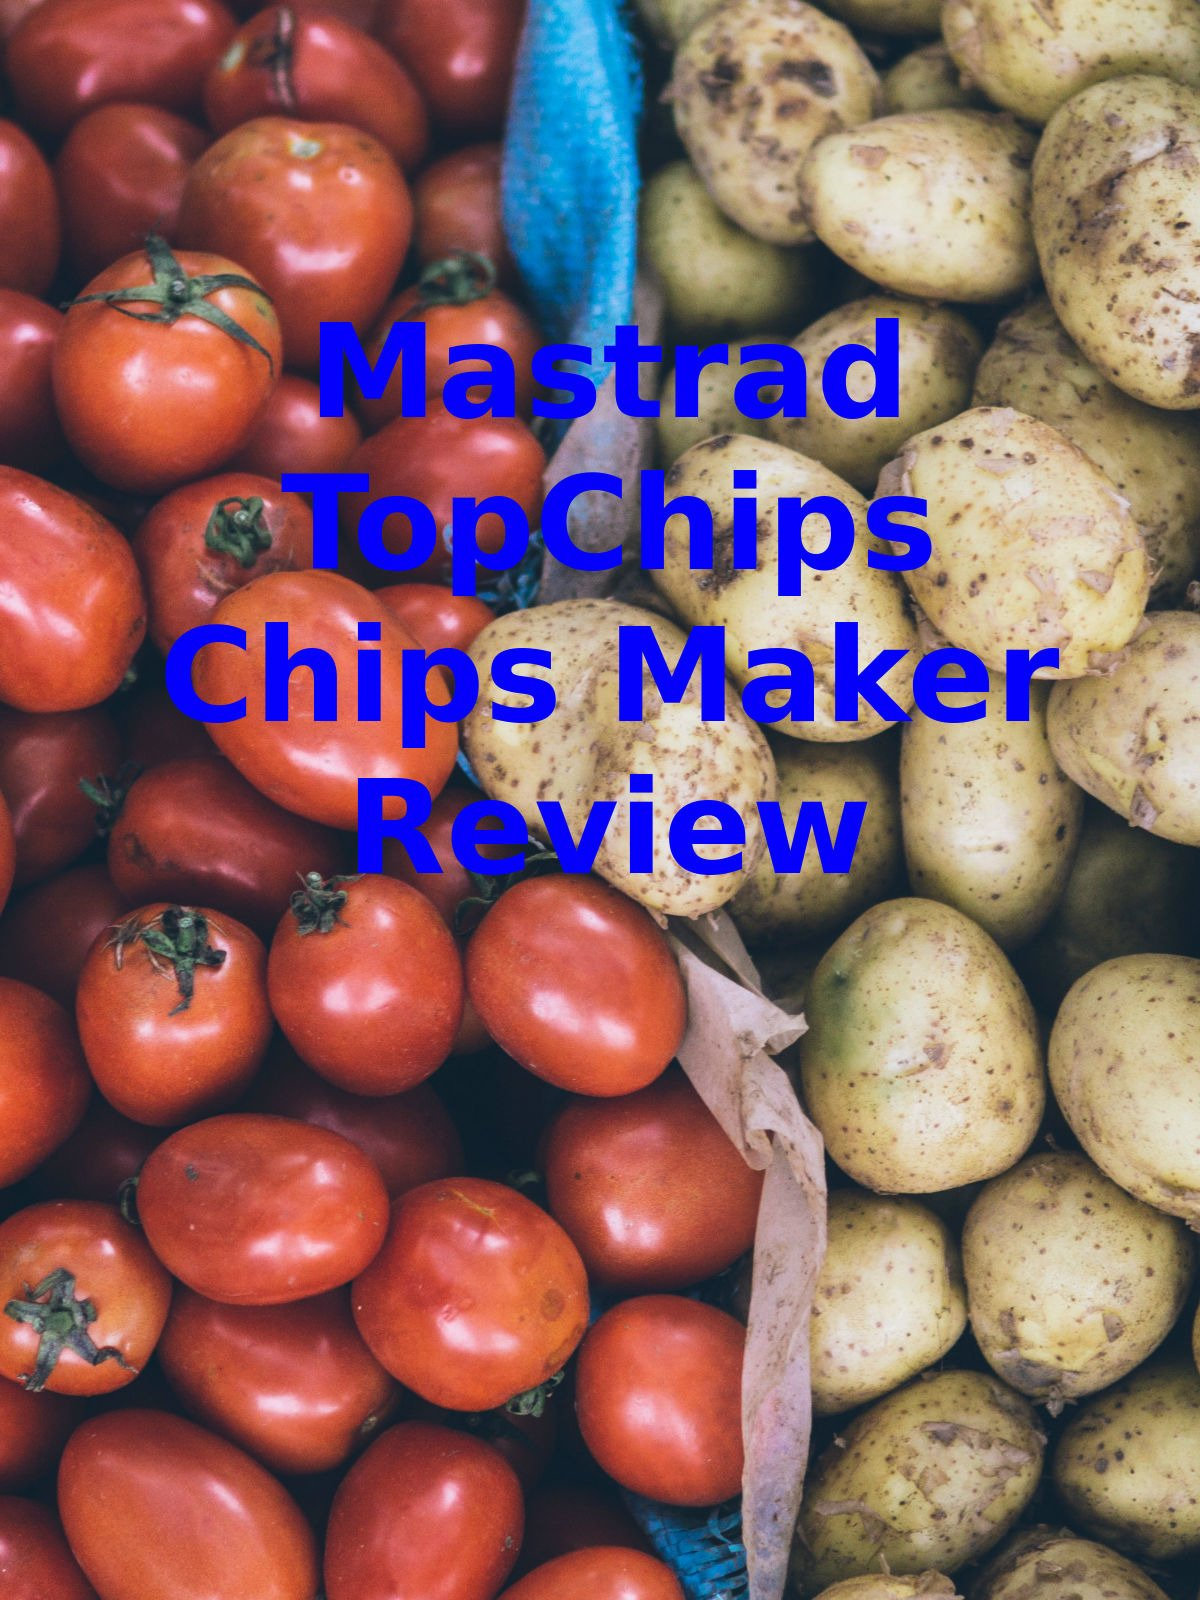 Review: Mastrad TopChips Chips Maker Review